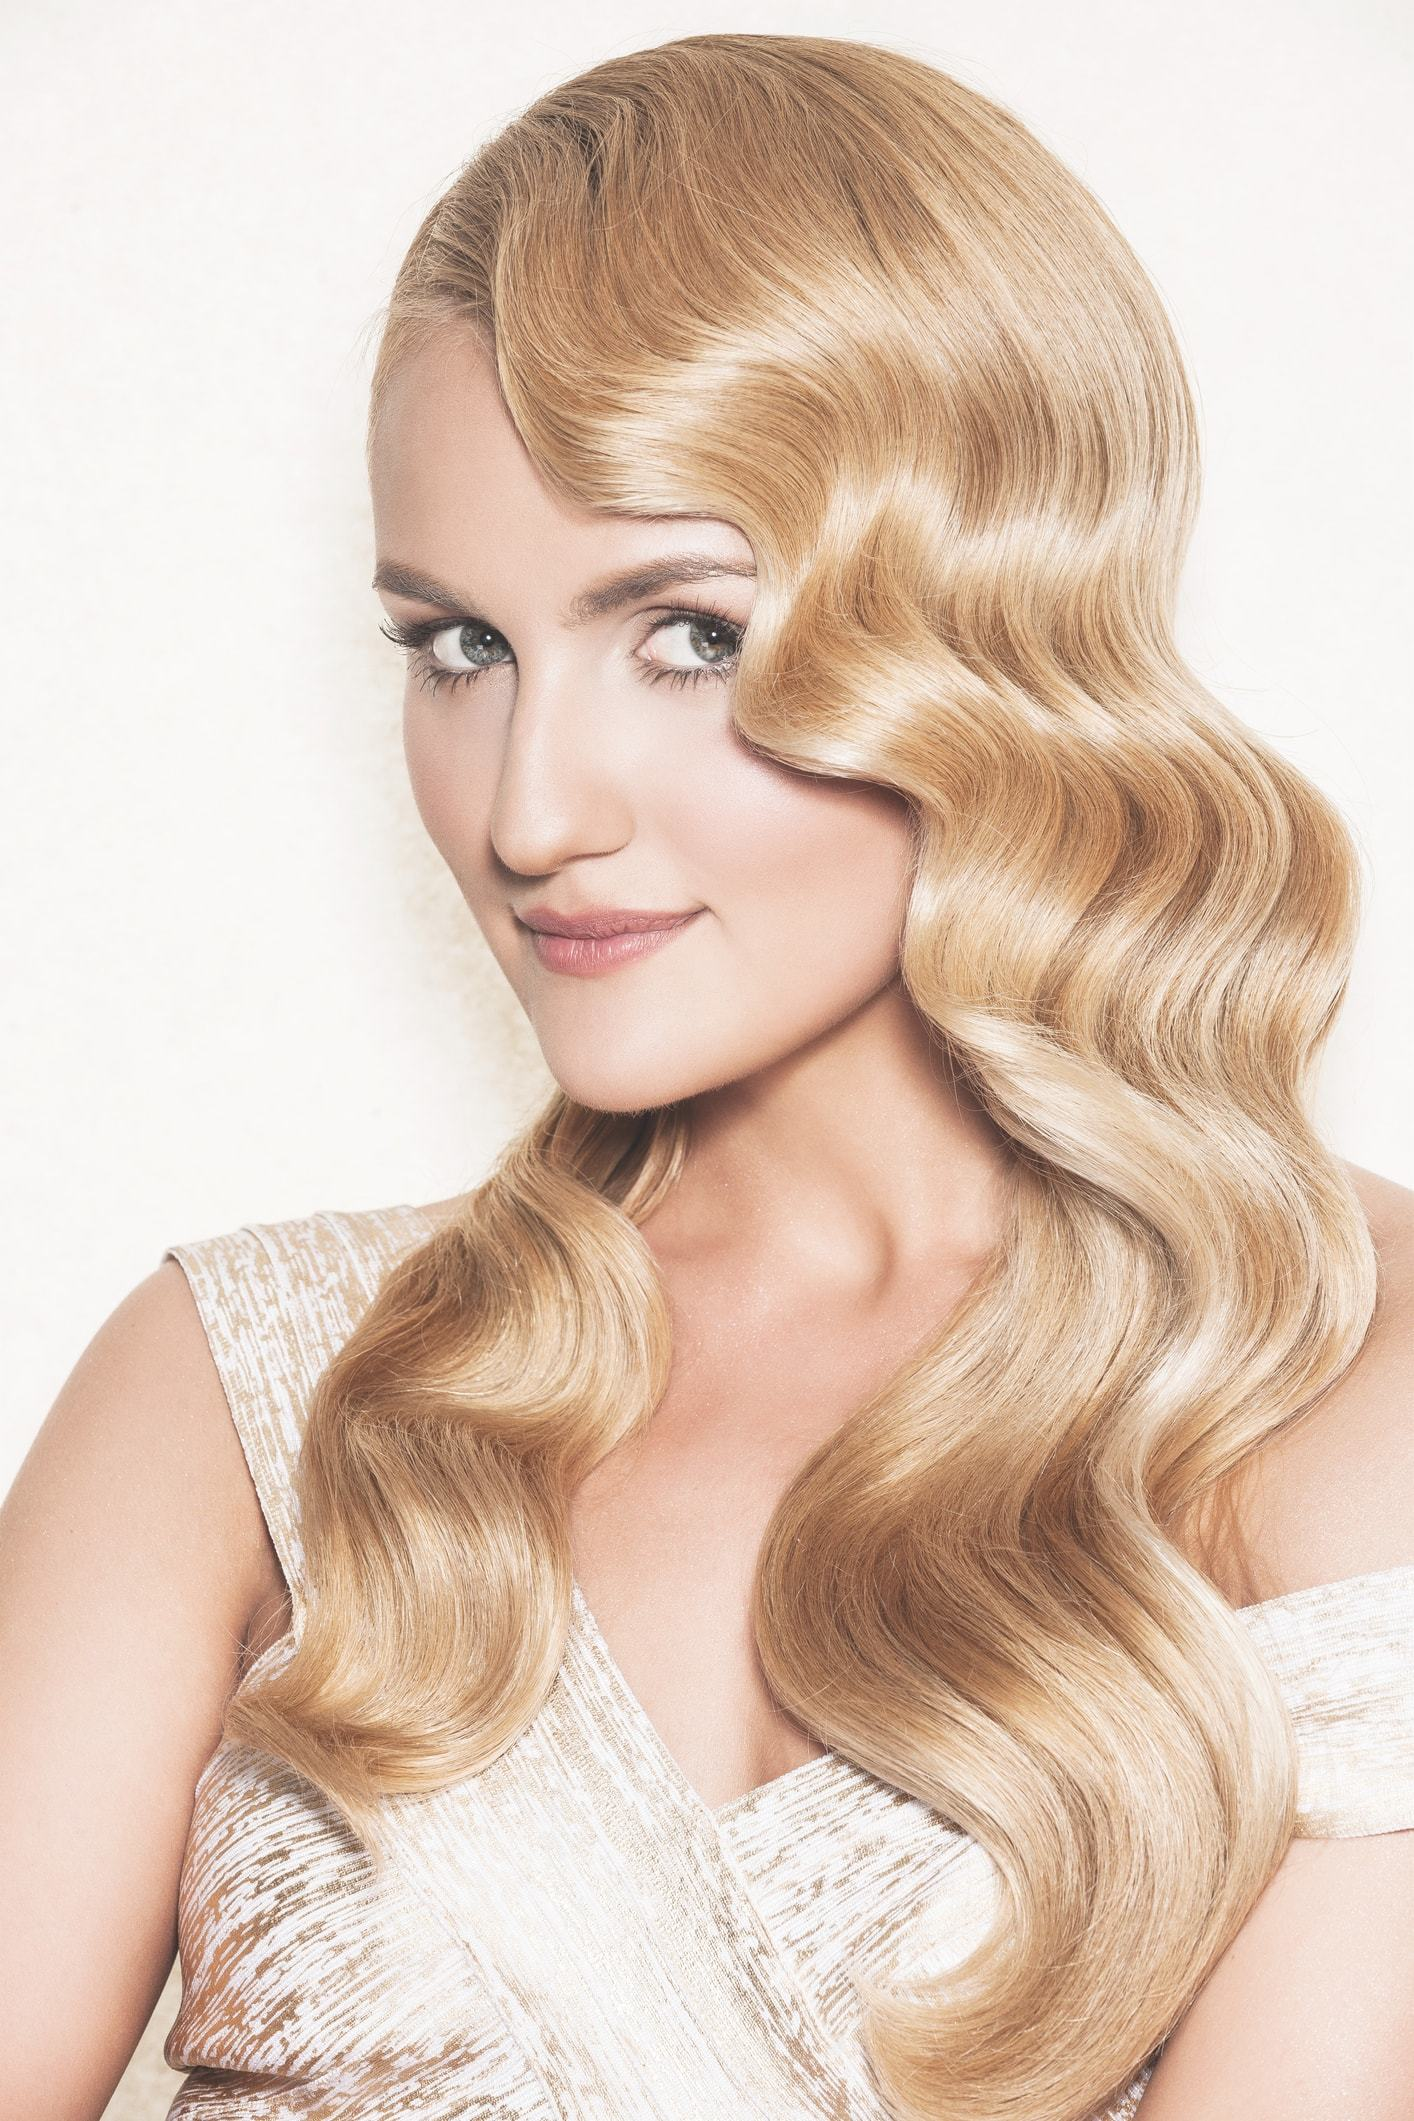 20 Vintage Hairstyles For Curly Hair You Ll Be Wearing On Repeat